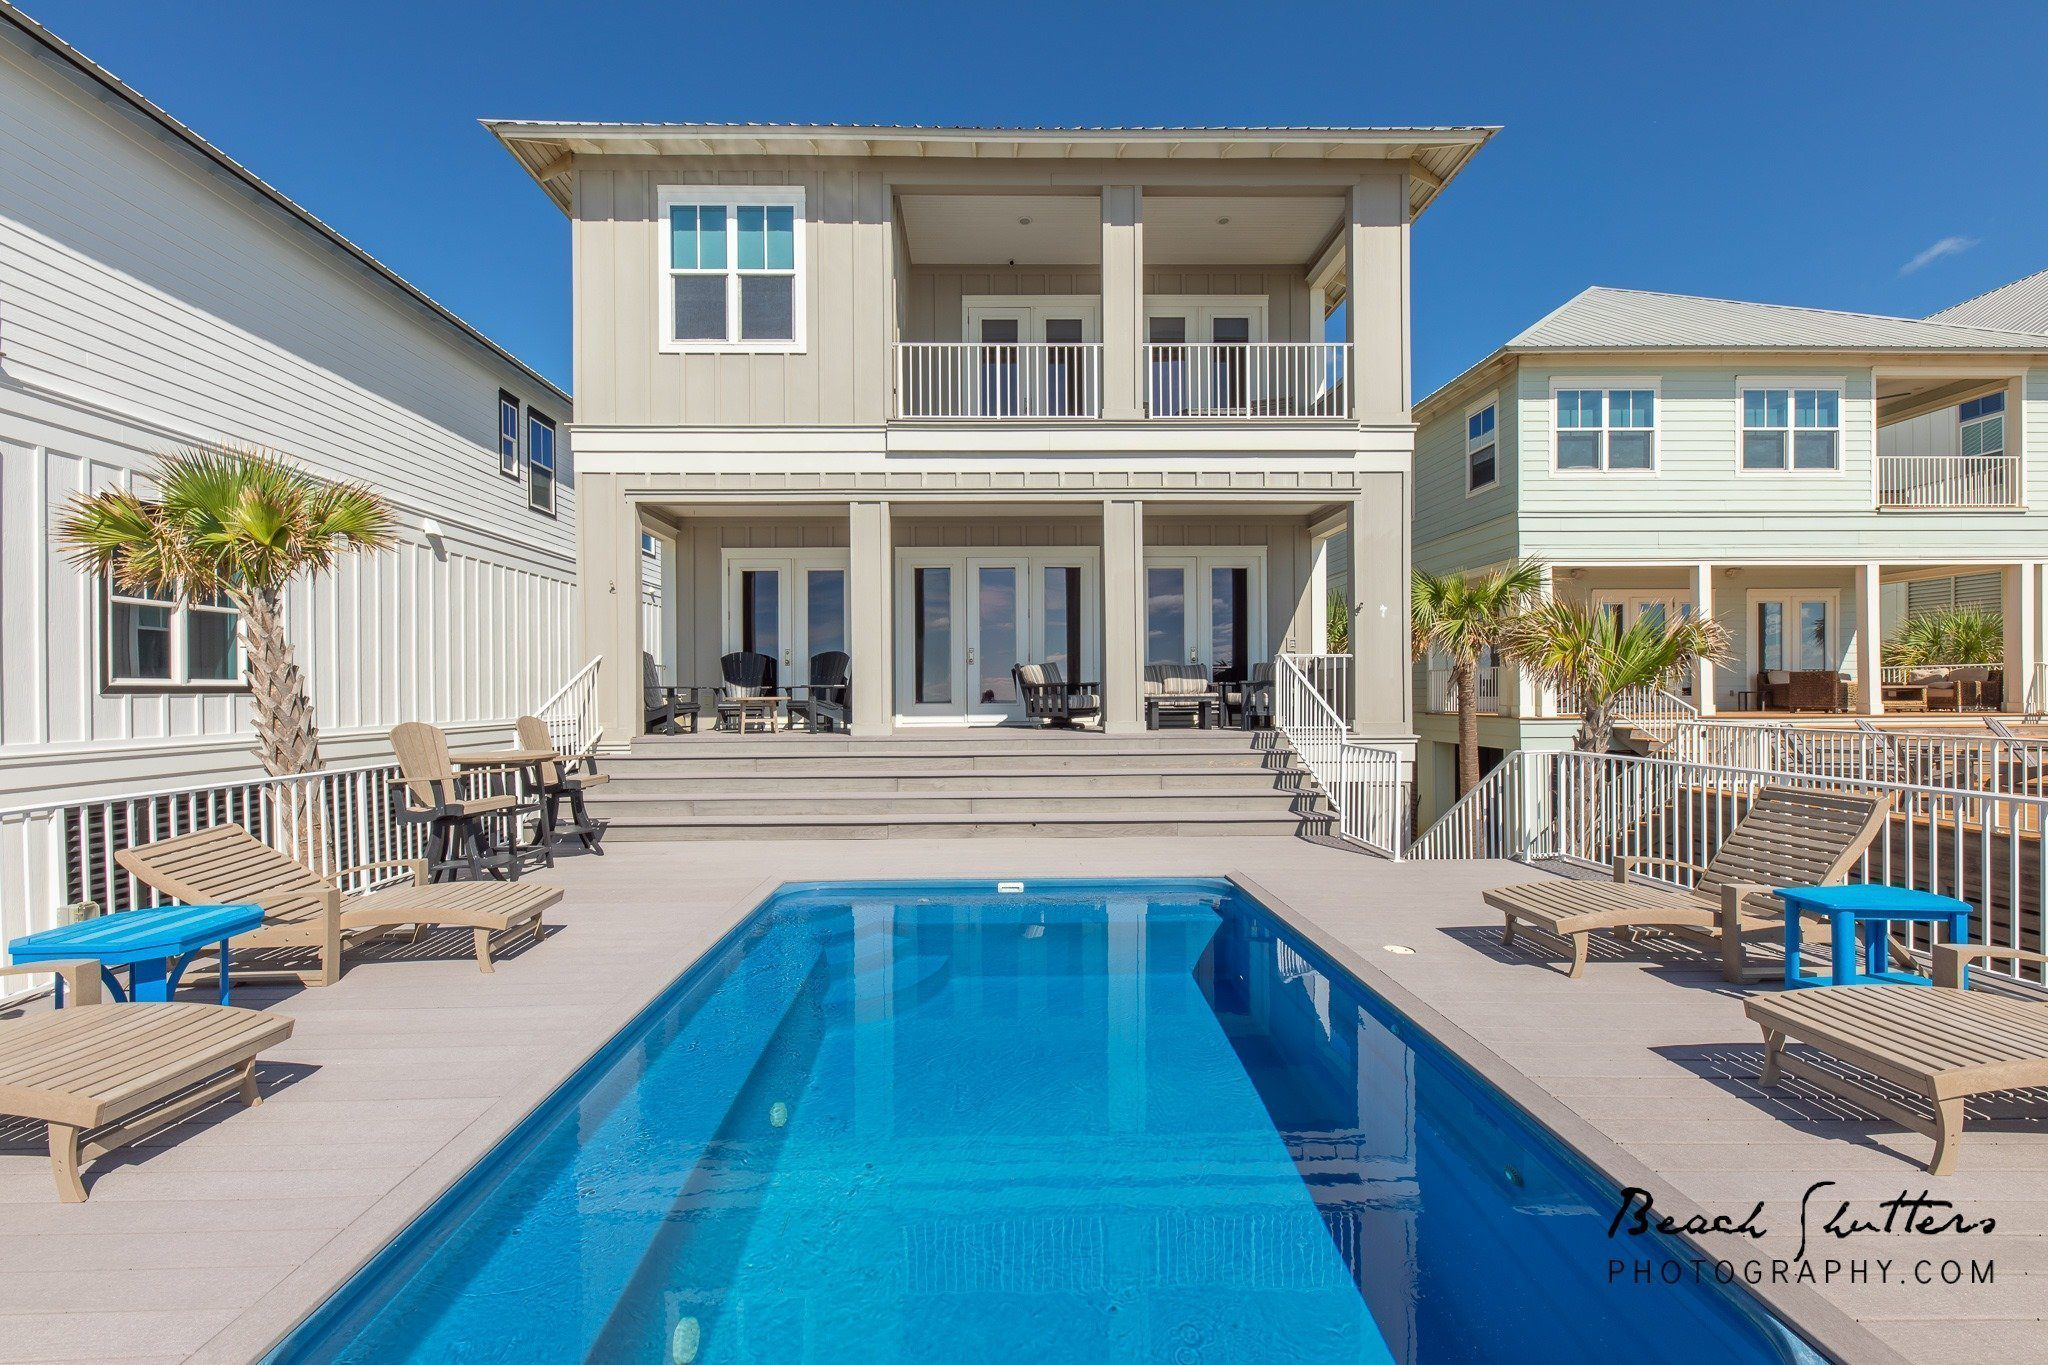 Rental homes in Orange Beach